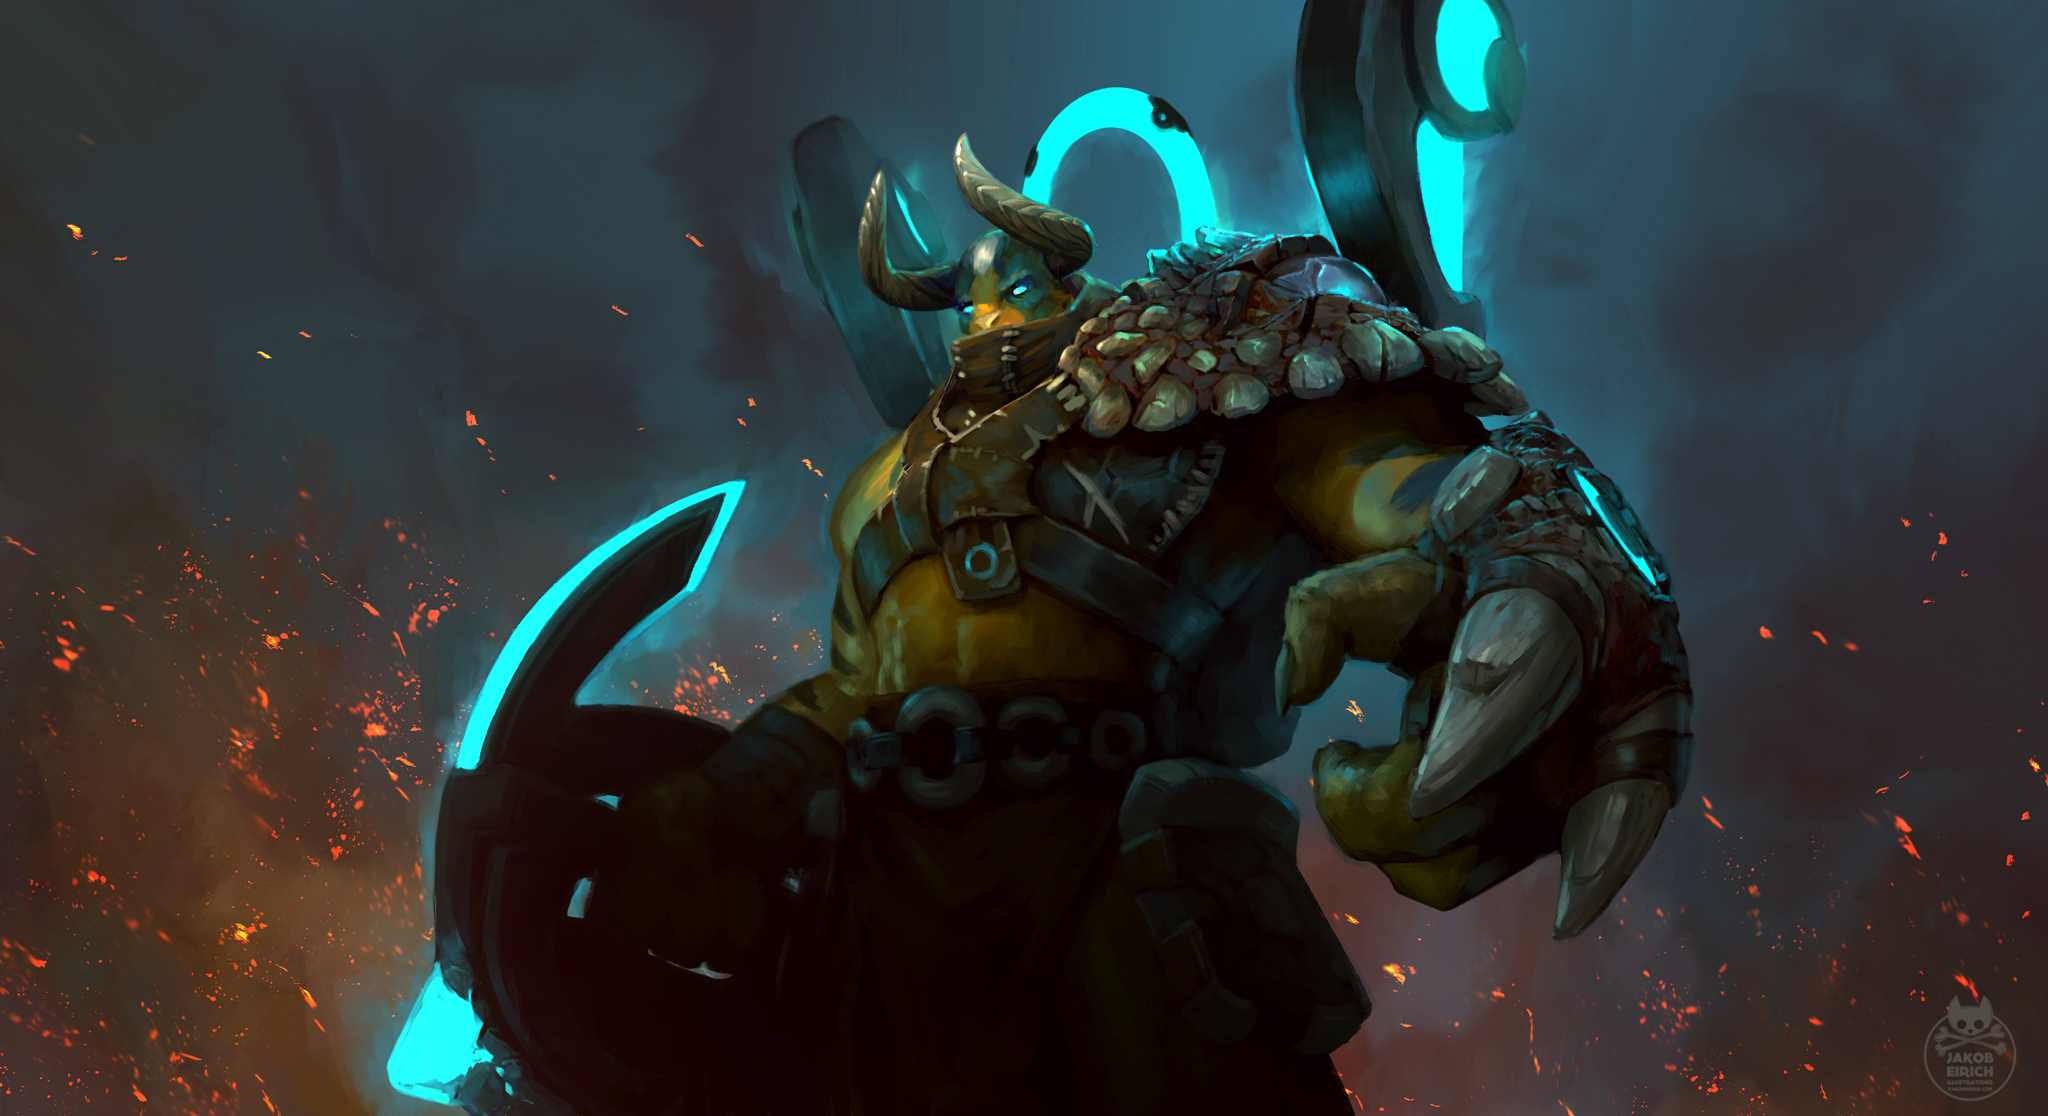 Dota 2 Elder Titan Wallpapers High Quality Is Cool Wallpapers